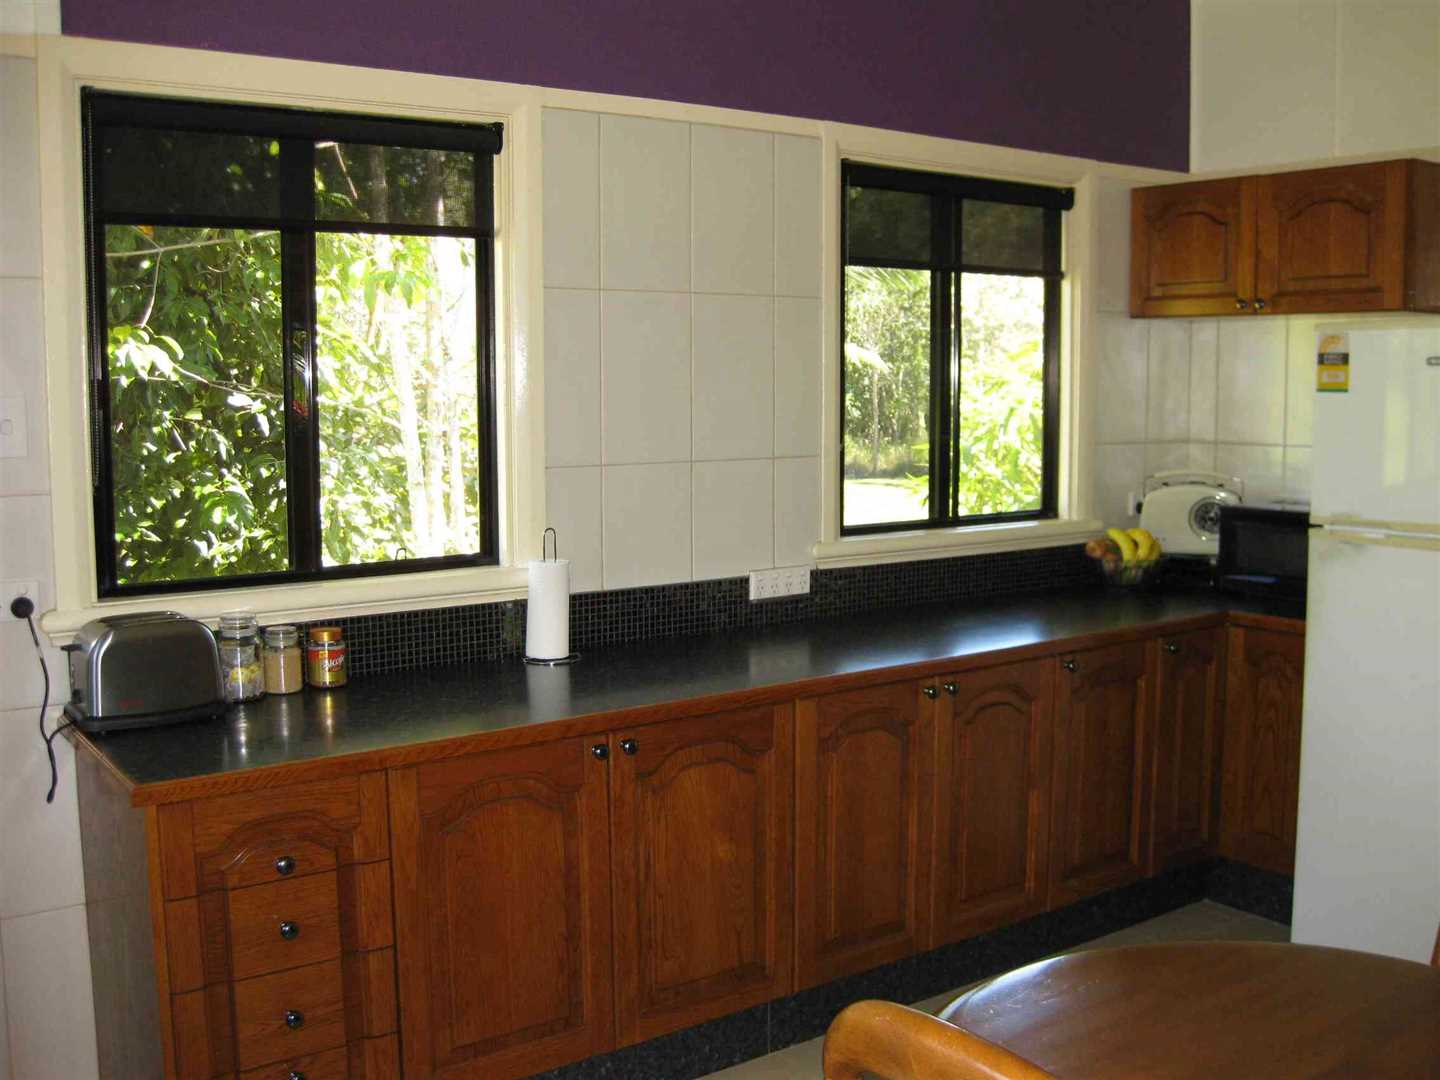 Inside view of part of home showing part of dining area and kitchen, photo 3